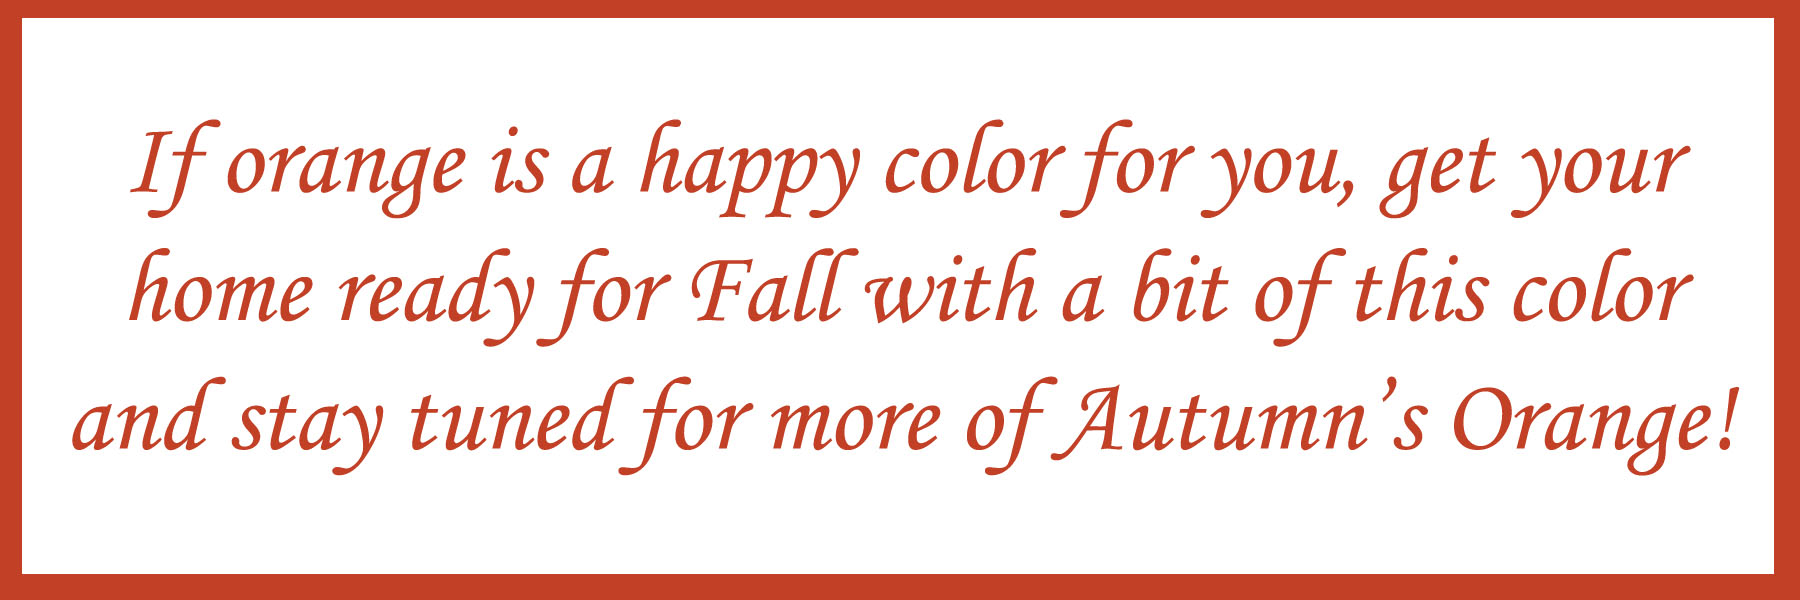 north carolina interior designer and author kathryn crisp greeley presents autumn orange pantone